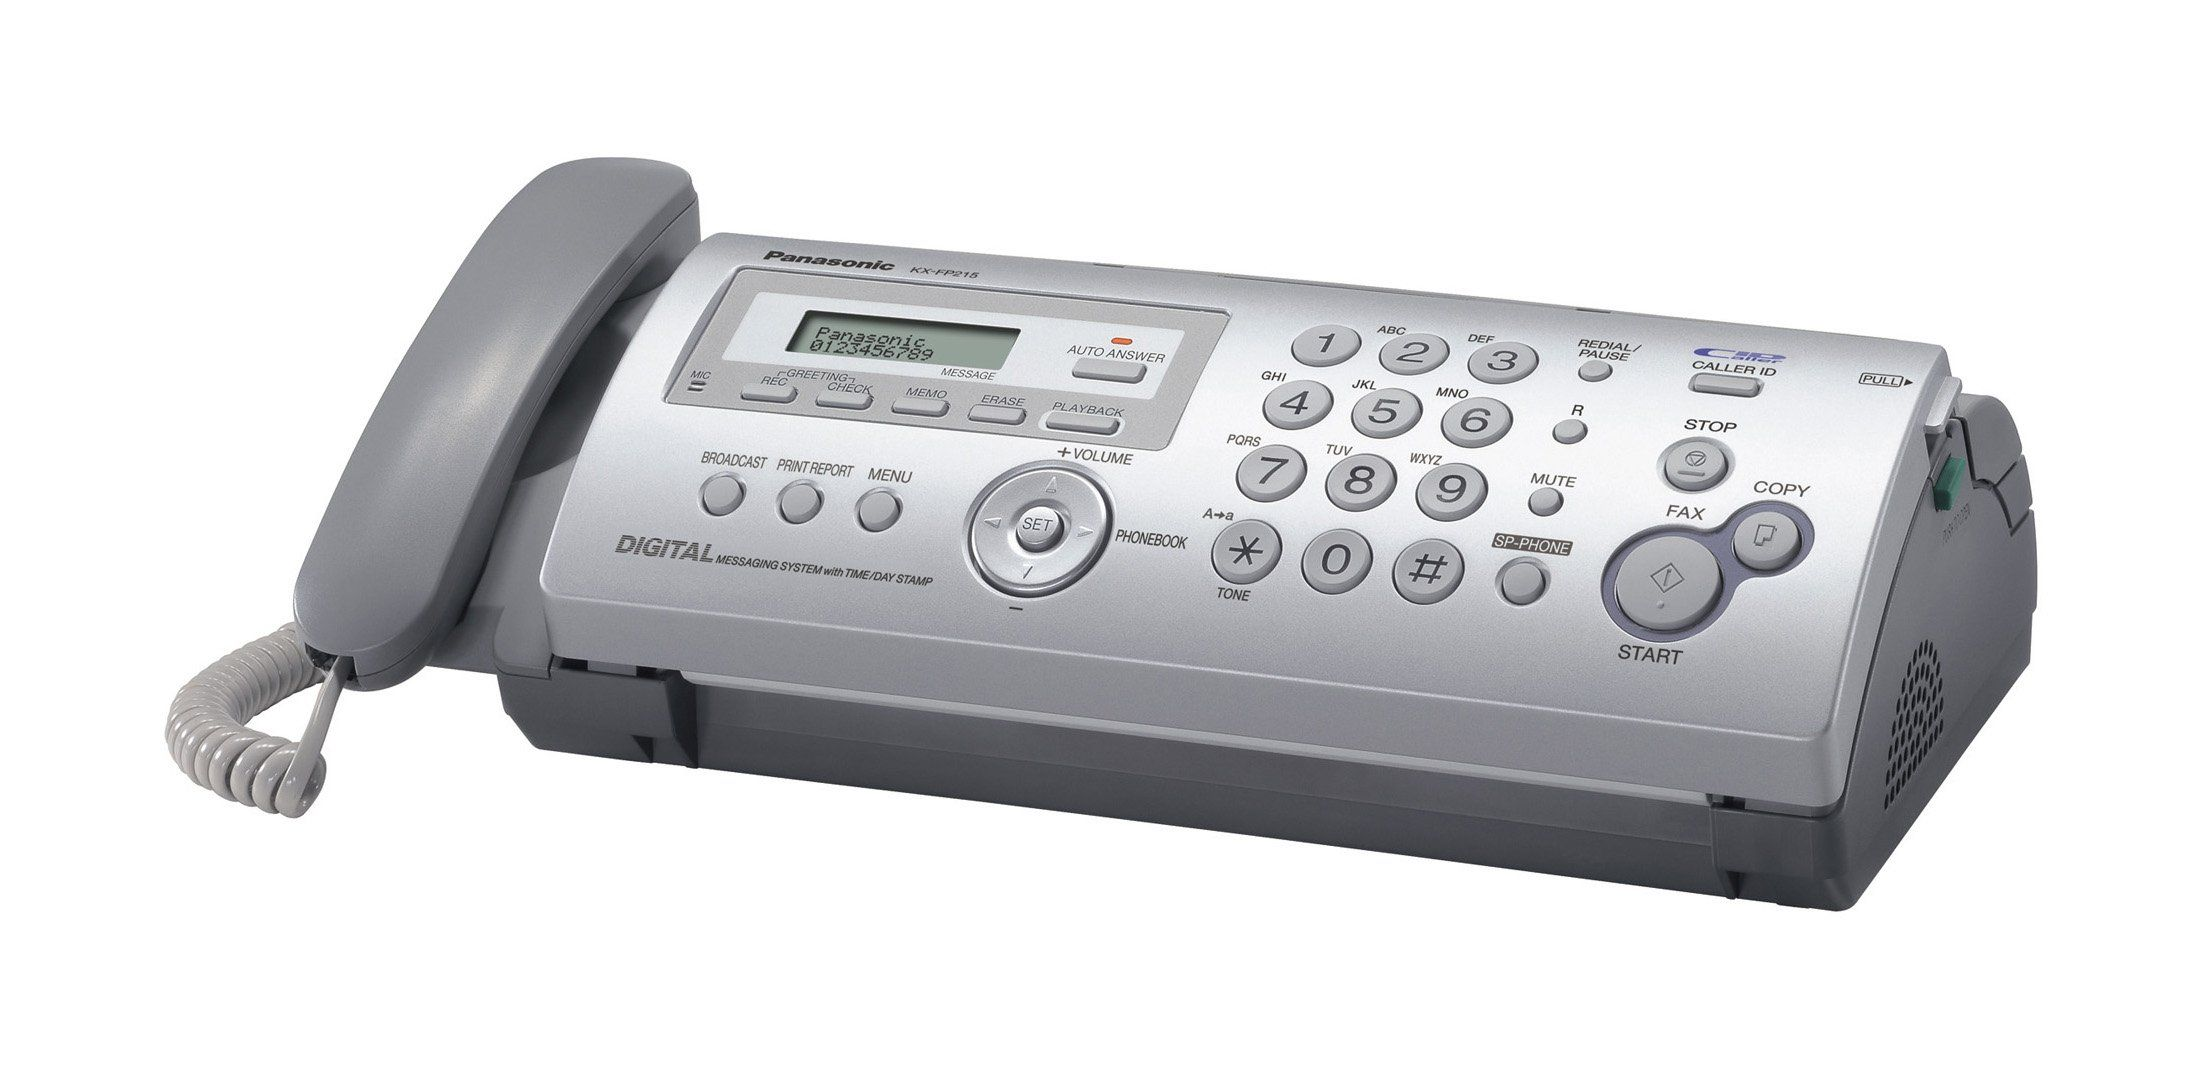 Compact plain paper faxcopier with answering system fax